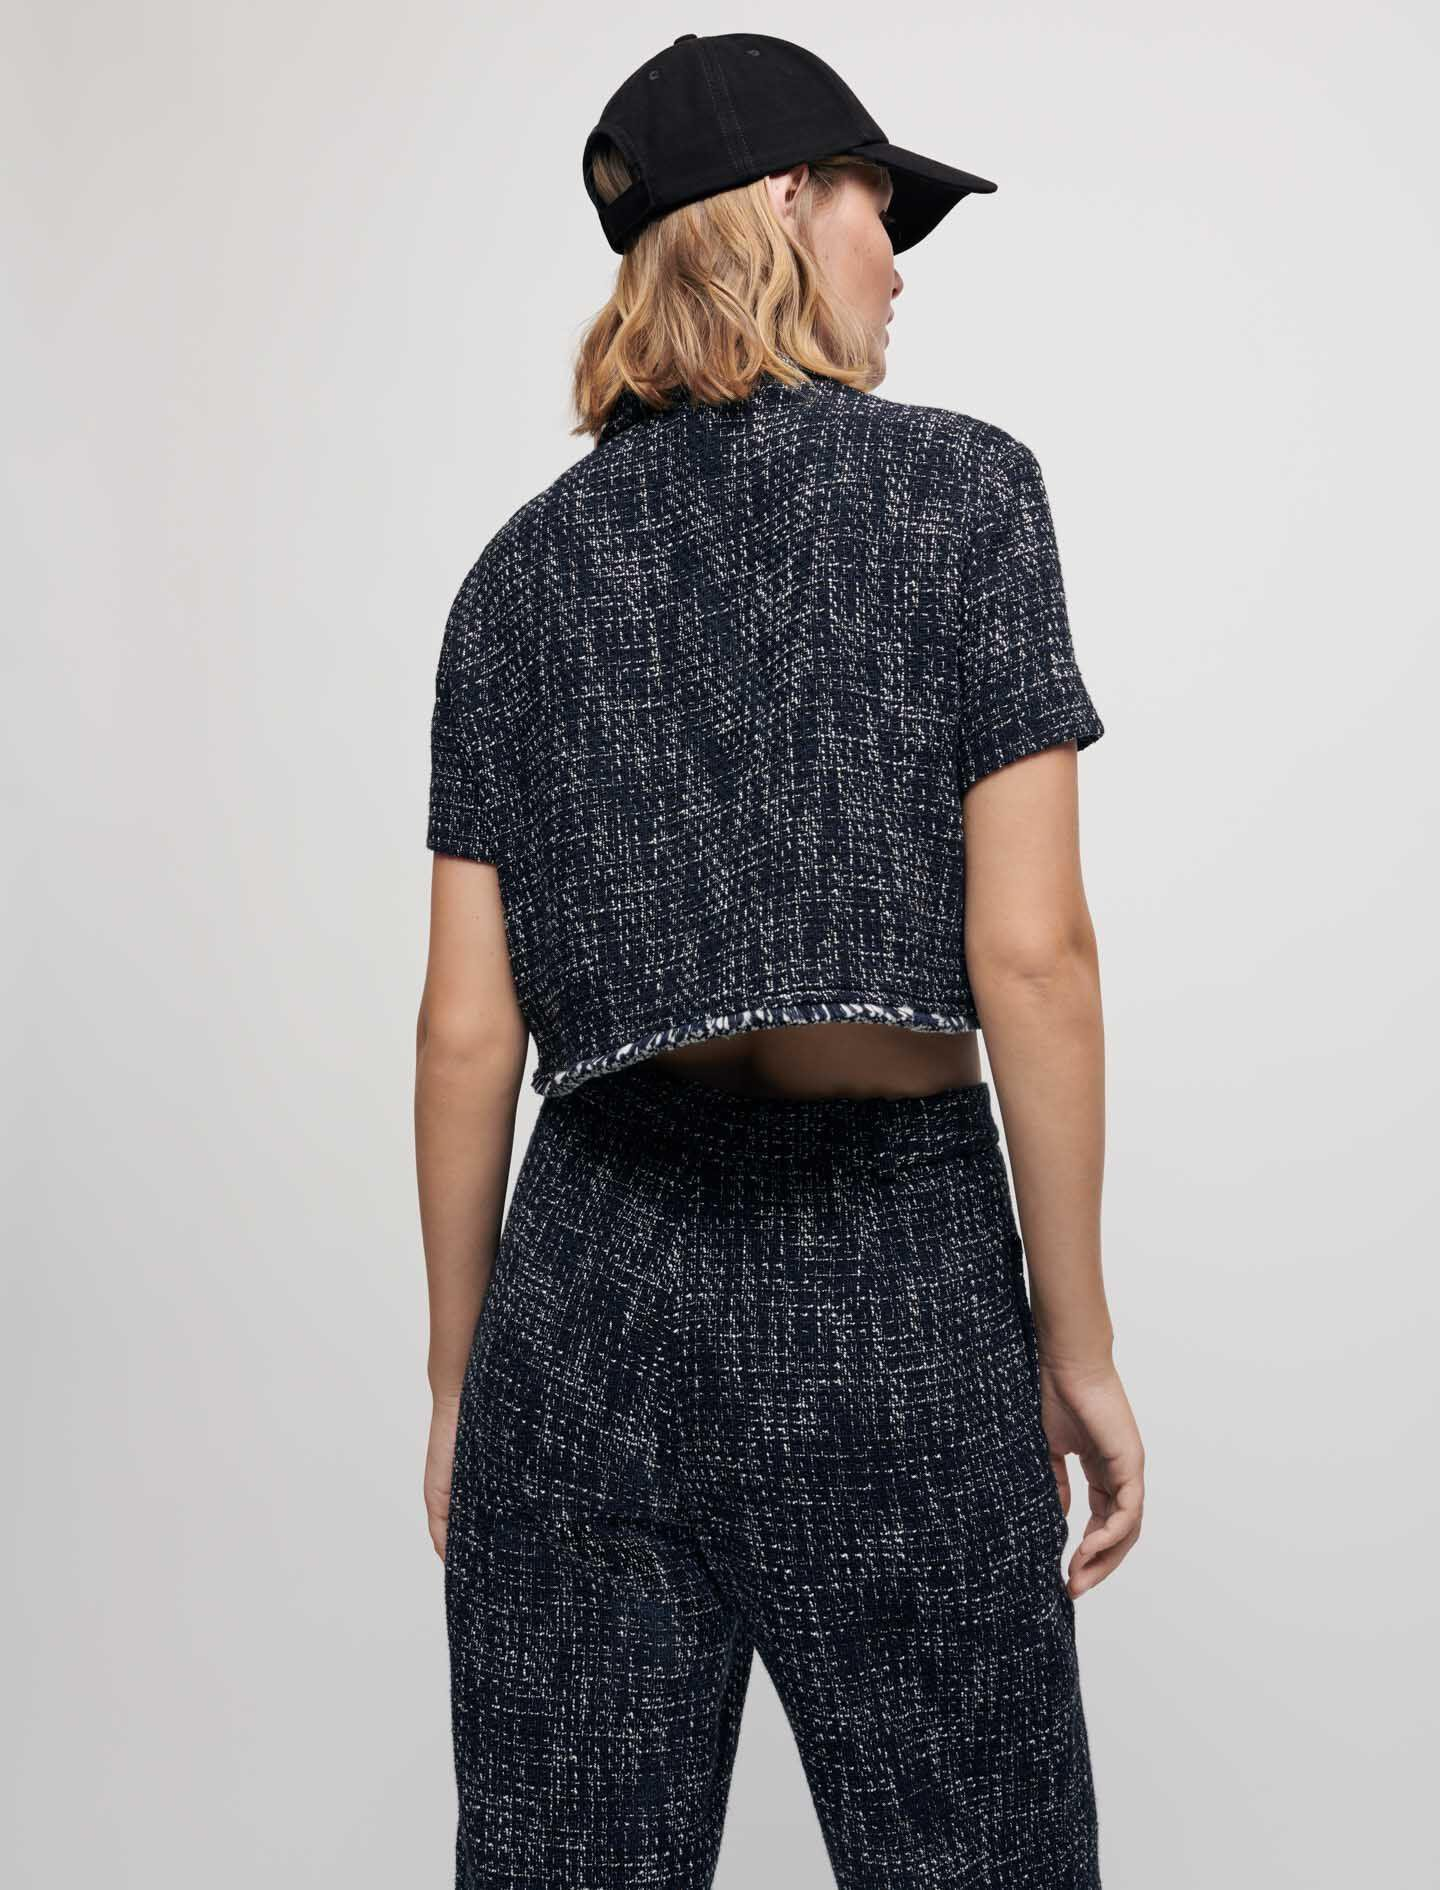 TWEED-STYLE CROPPED SHIRT 3